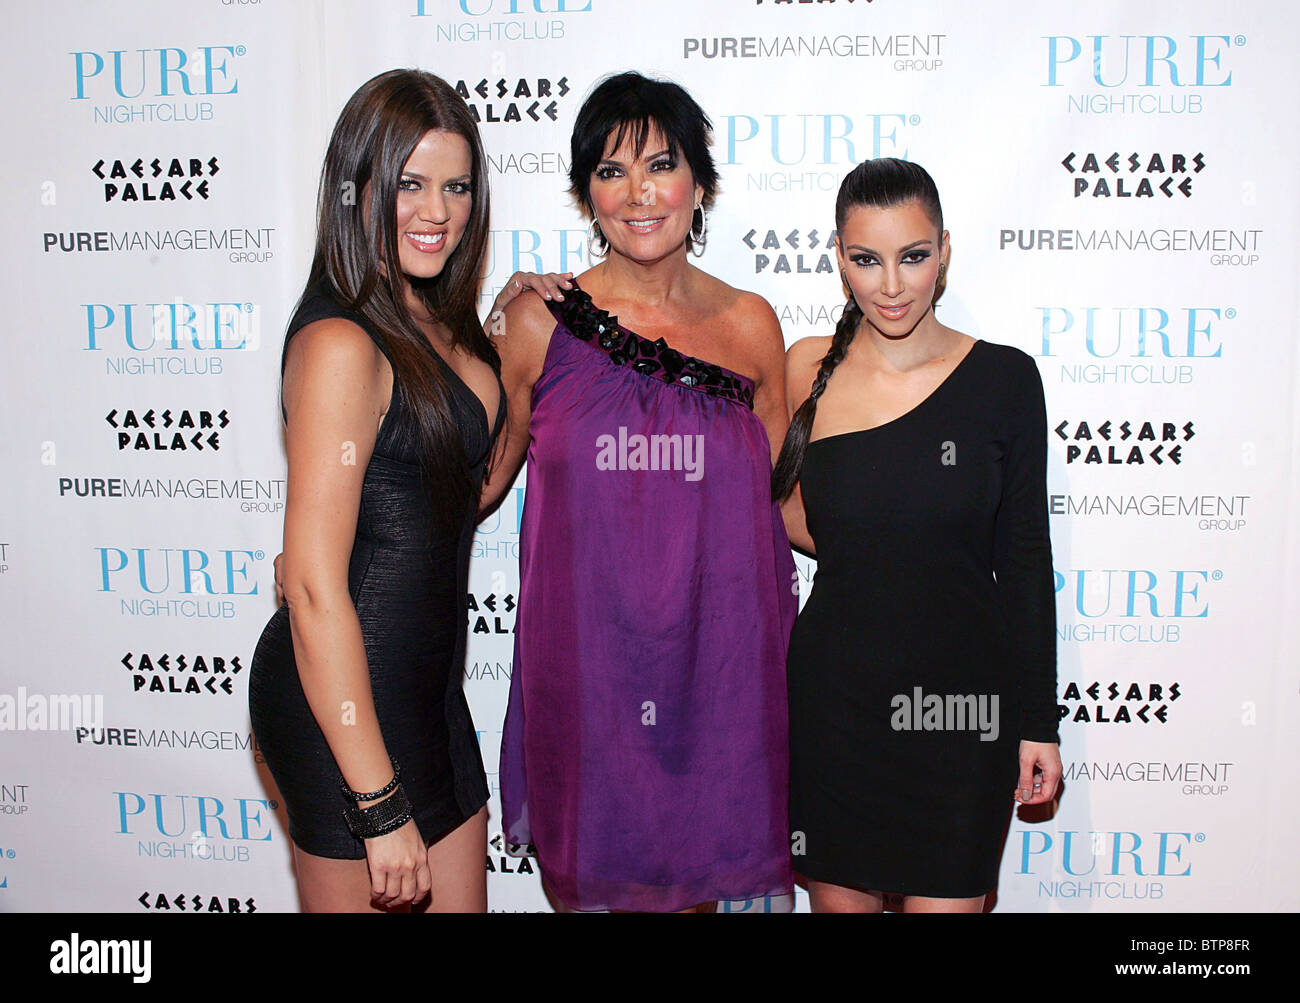 Asombroso Kardashian Party Dresses Friso - Ideas de Vestidos de ...